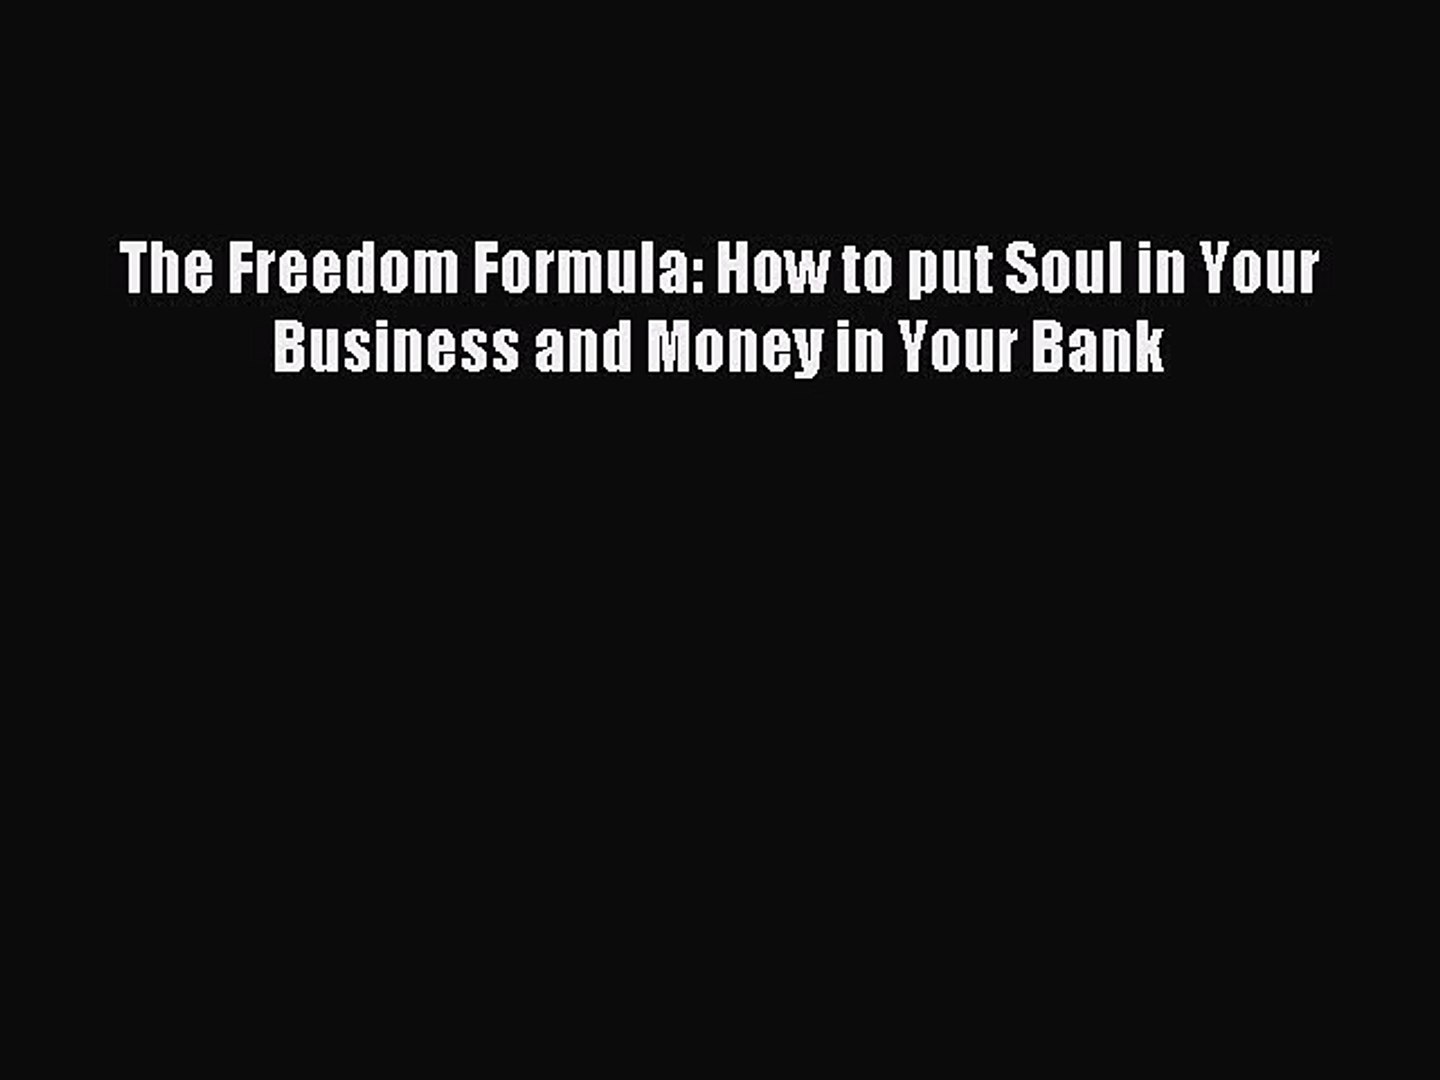 (PDF Download) The Freedom Formula: How to put Soul in Your Business and Money in Your Bank